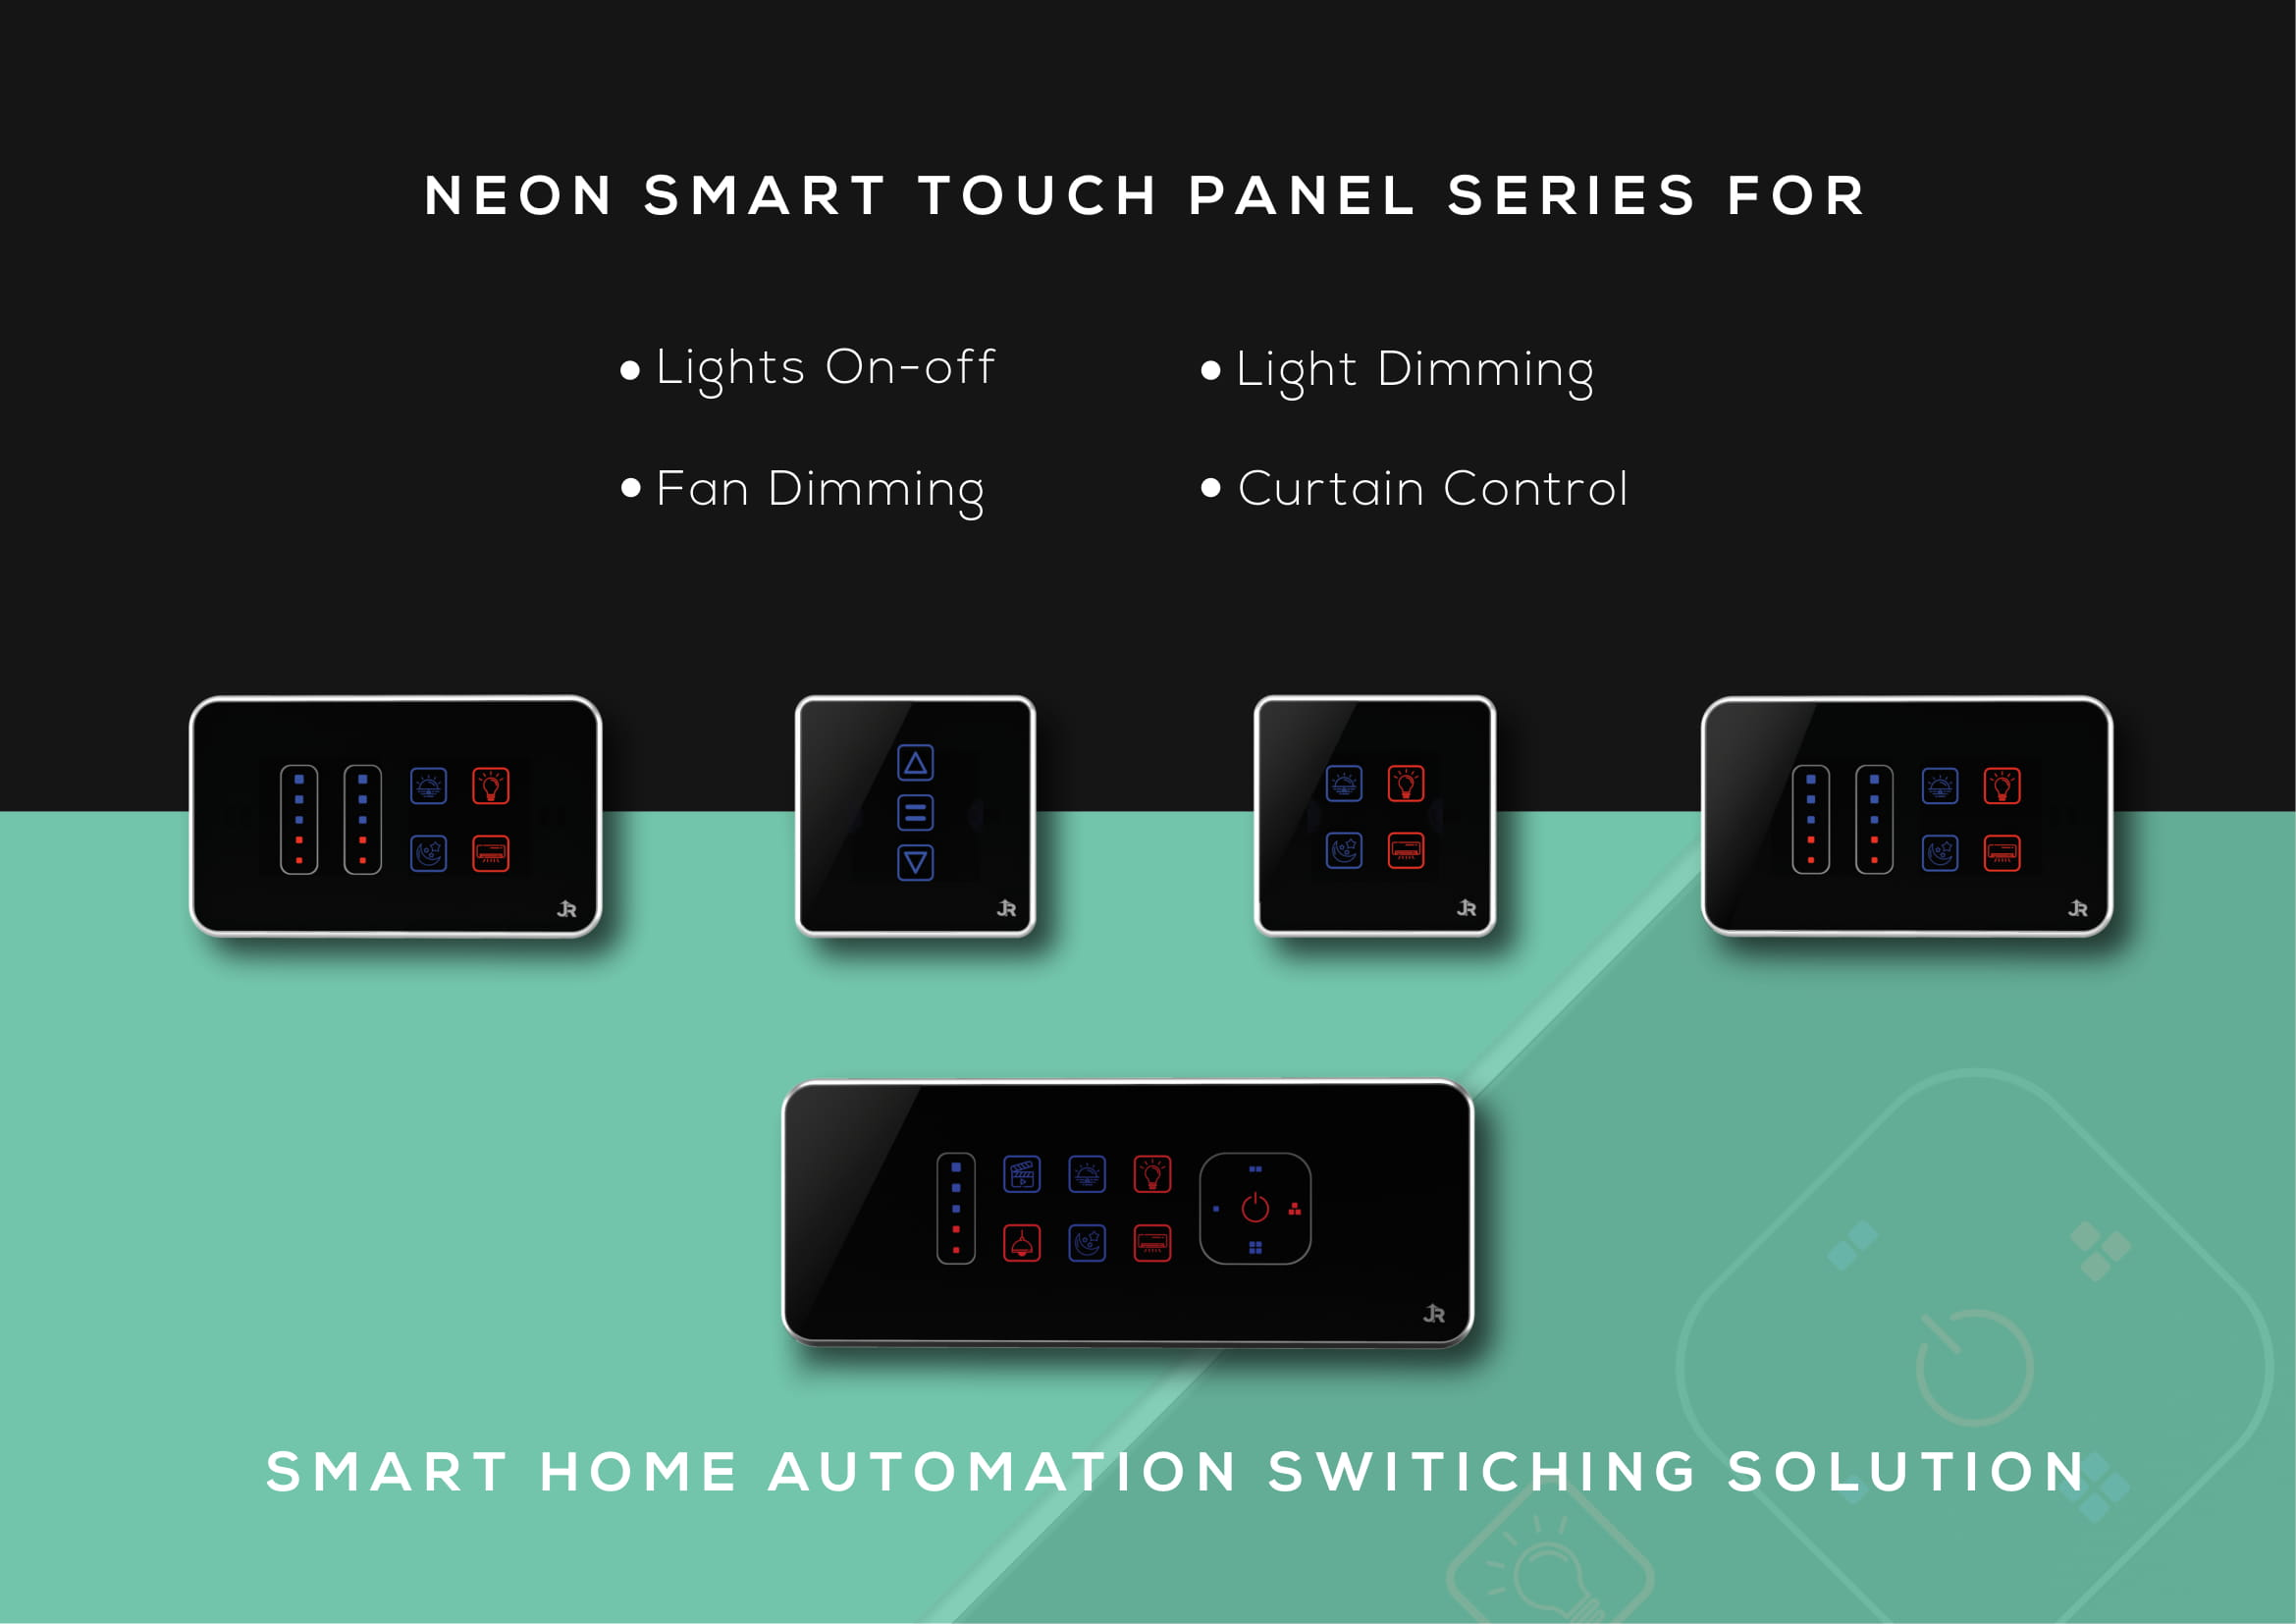 Which controller is compatible with Z-wave based neon series smart touch panels?